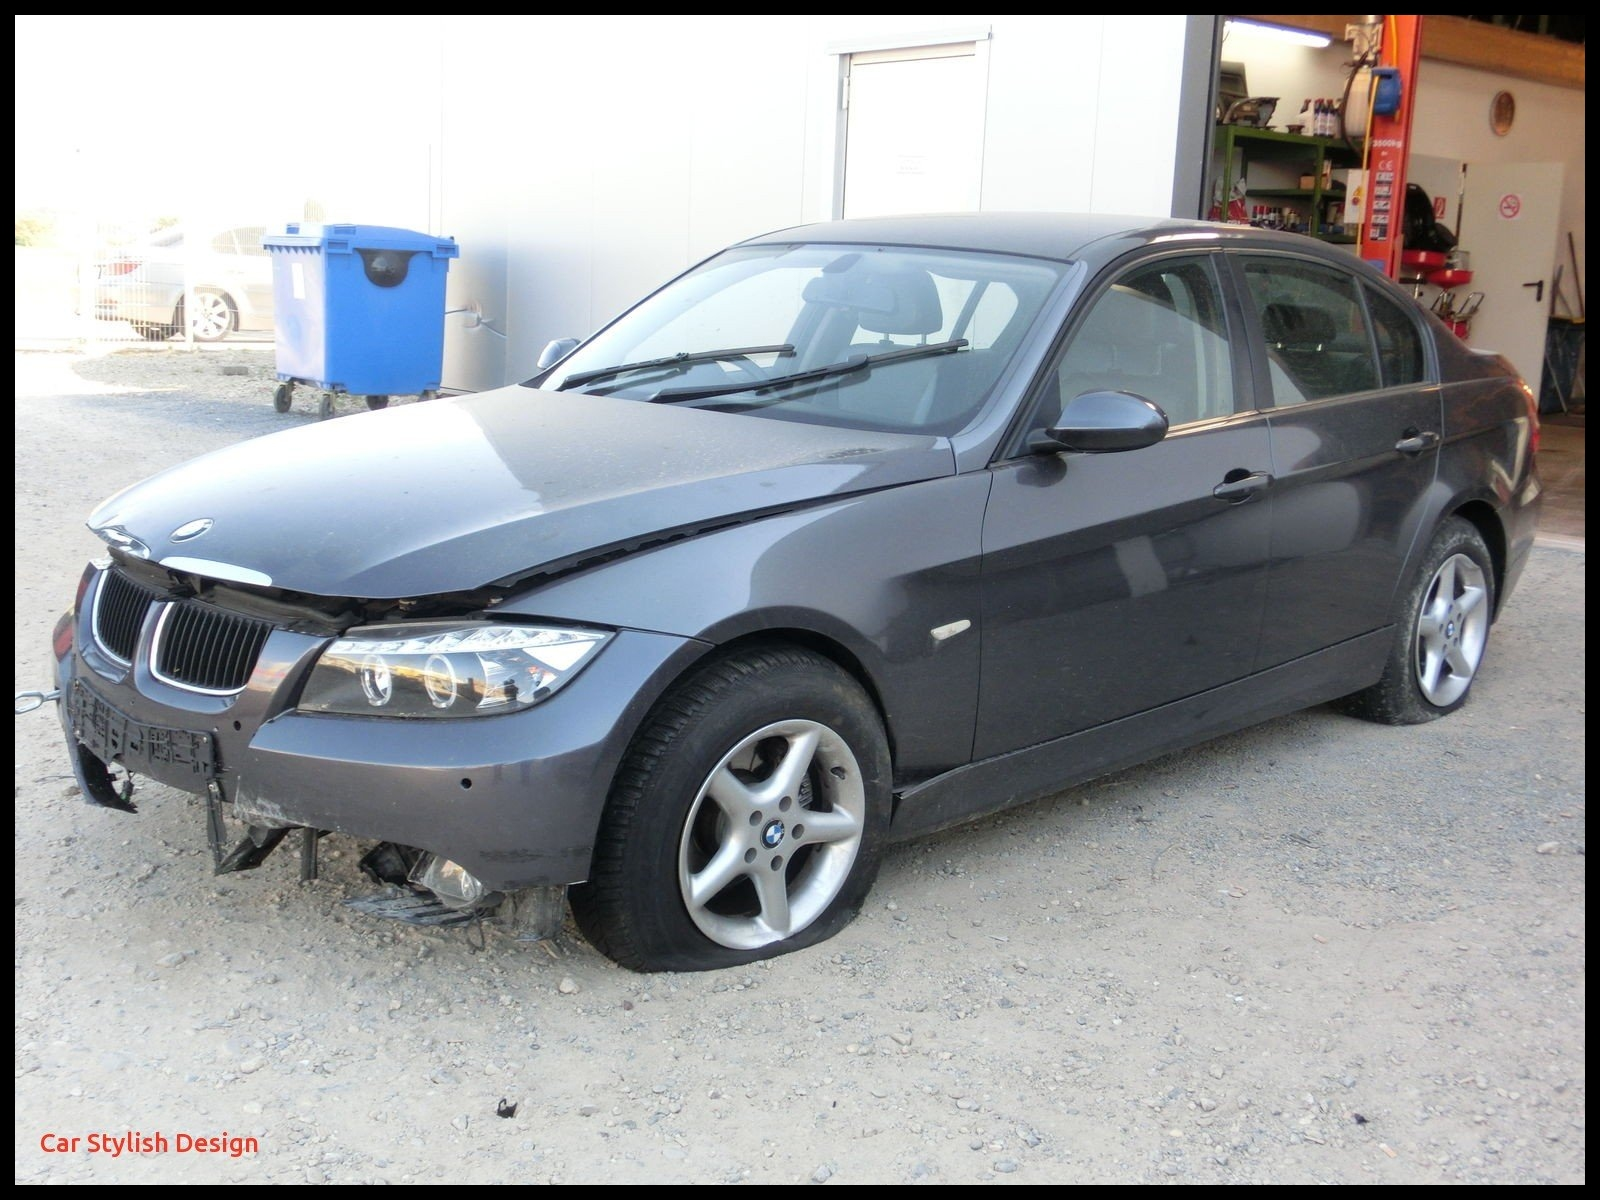 2006 Bmw 325i Lovely Used Bmw Instrument Clusters for Sale Page 35